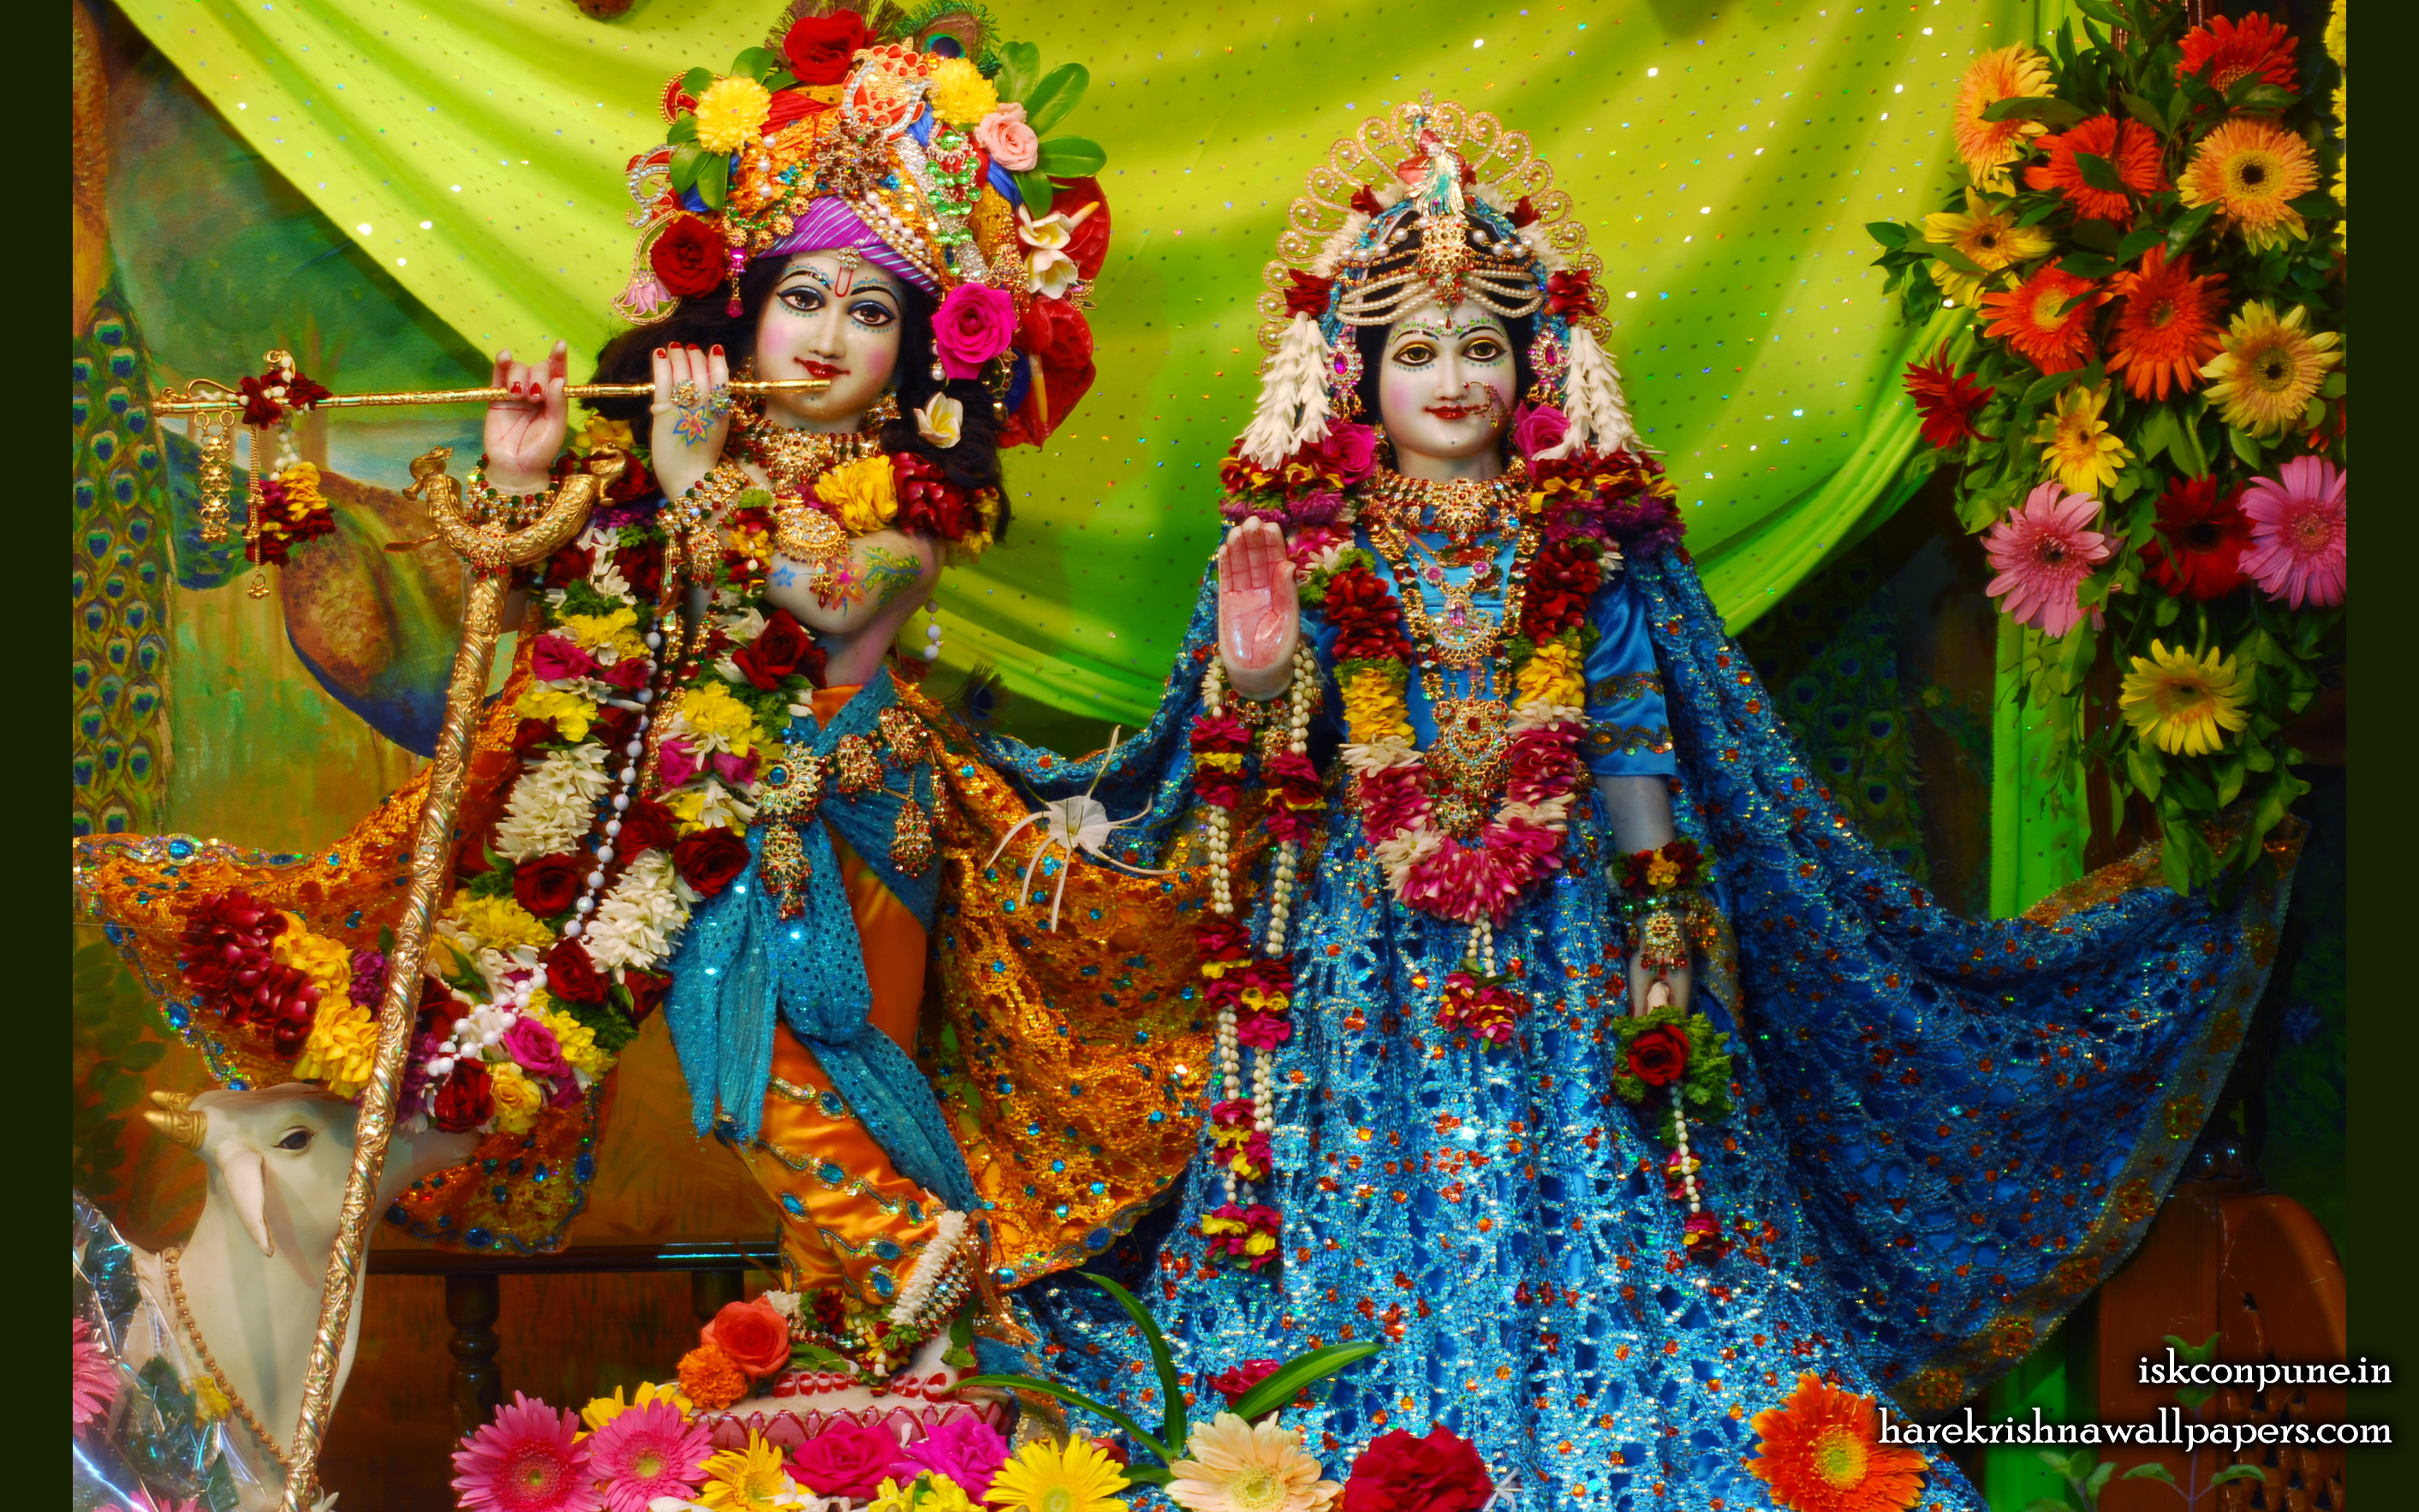 Sri Sri Radha Kunjabihari Wallpaper (006) Size 2560x1600 Download